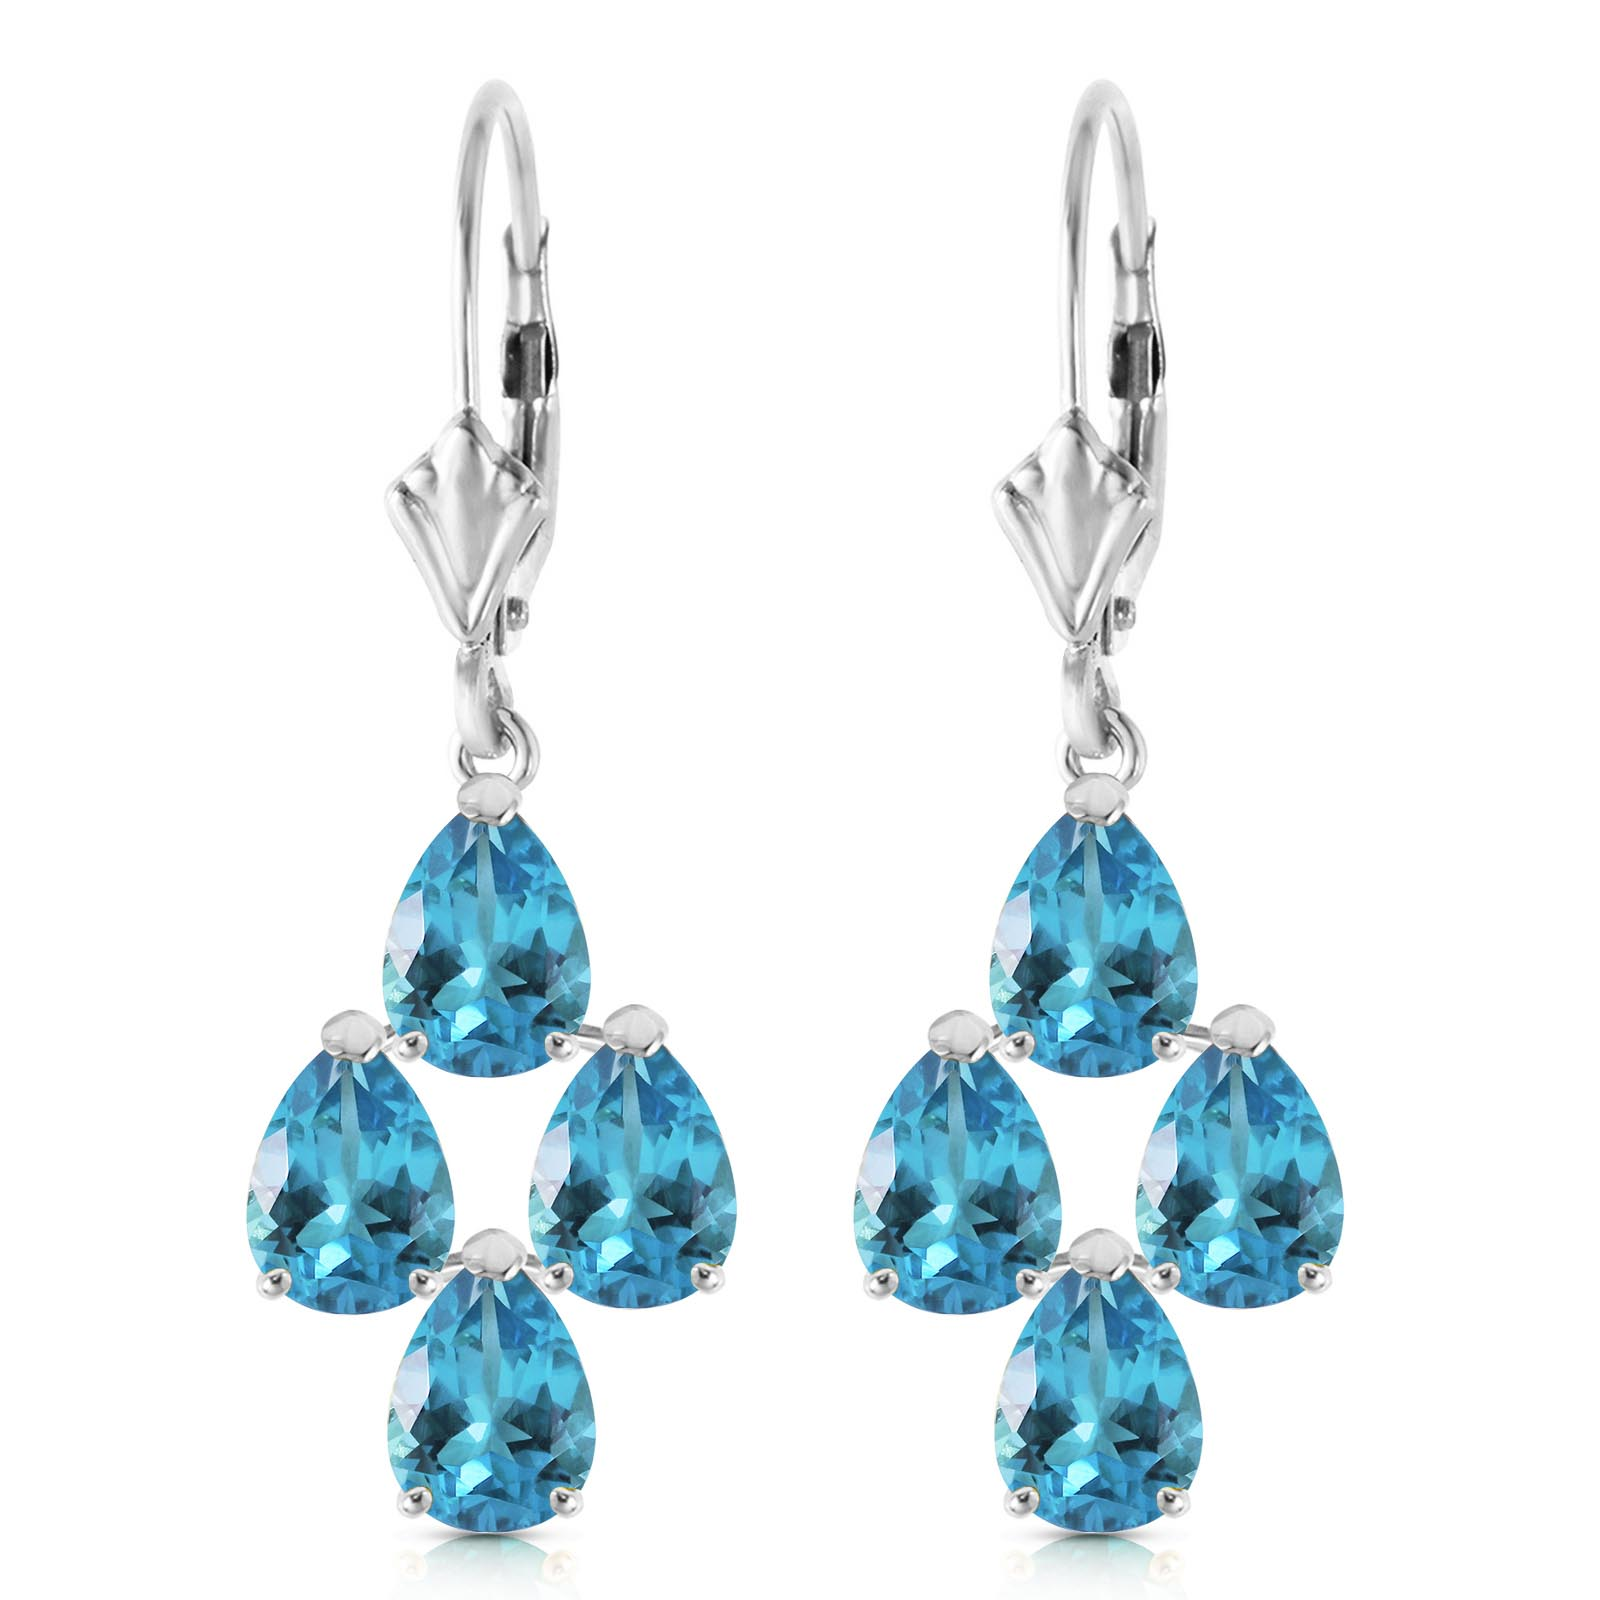 Blue Topaz Drop Earrings 4.5ctw in 14K White Gold